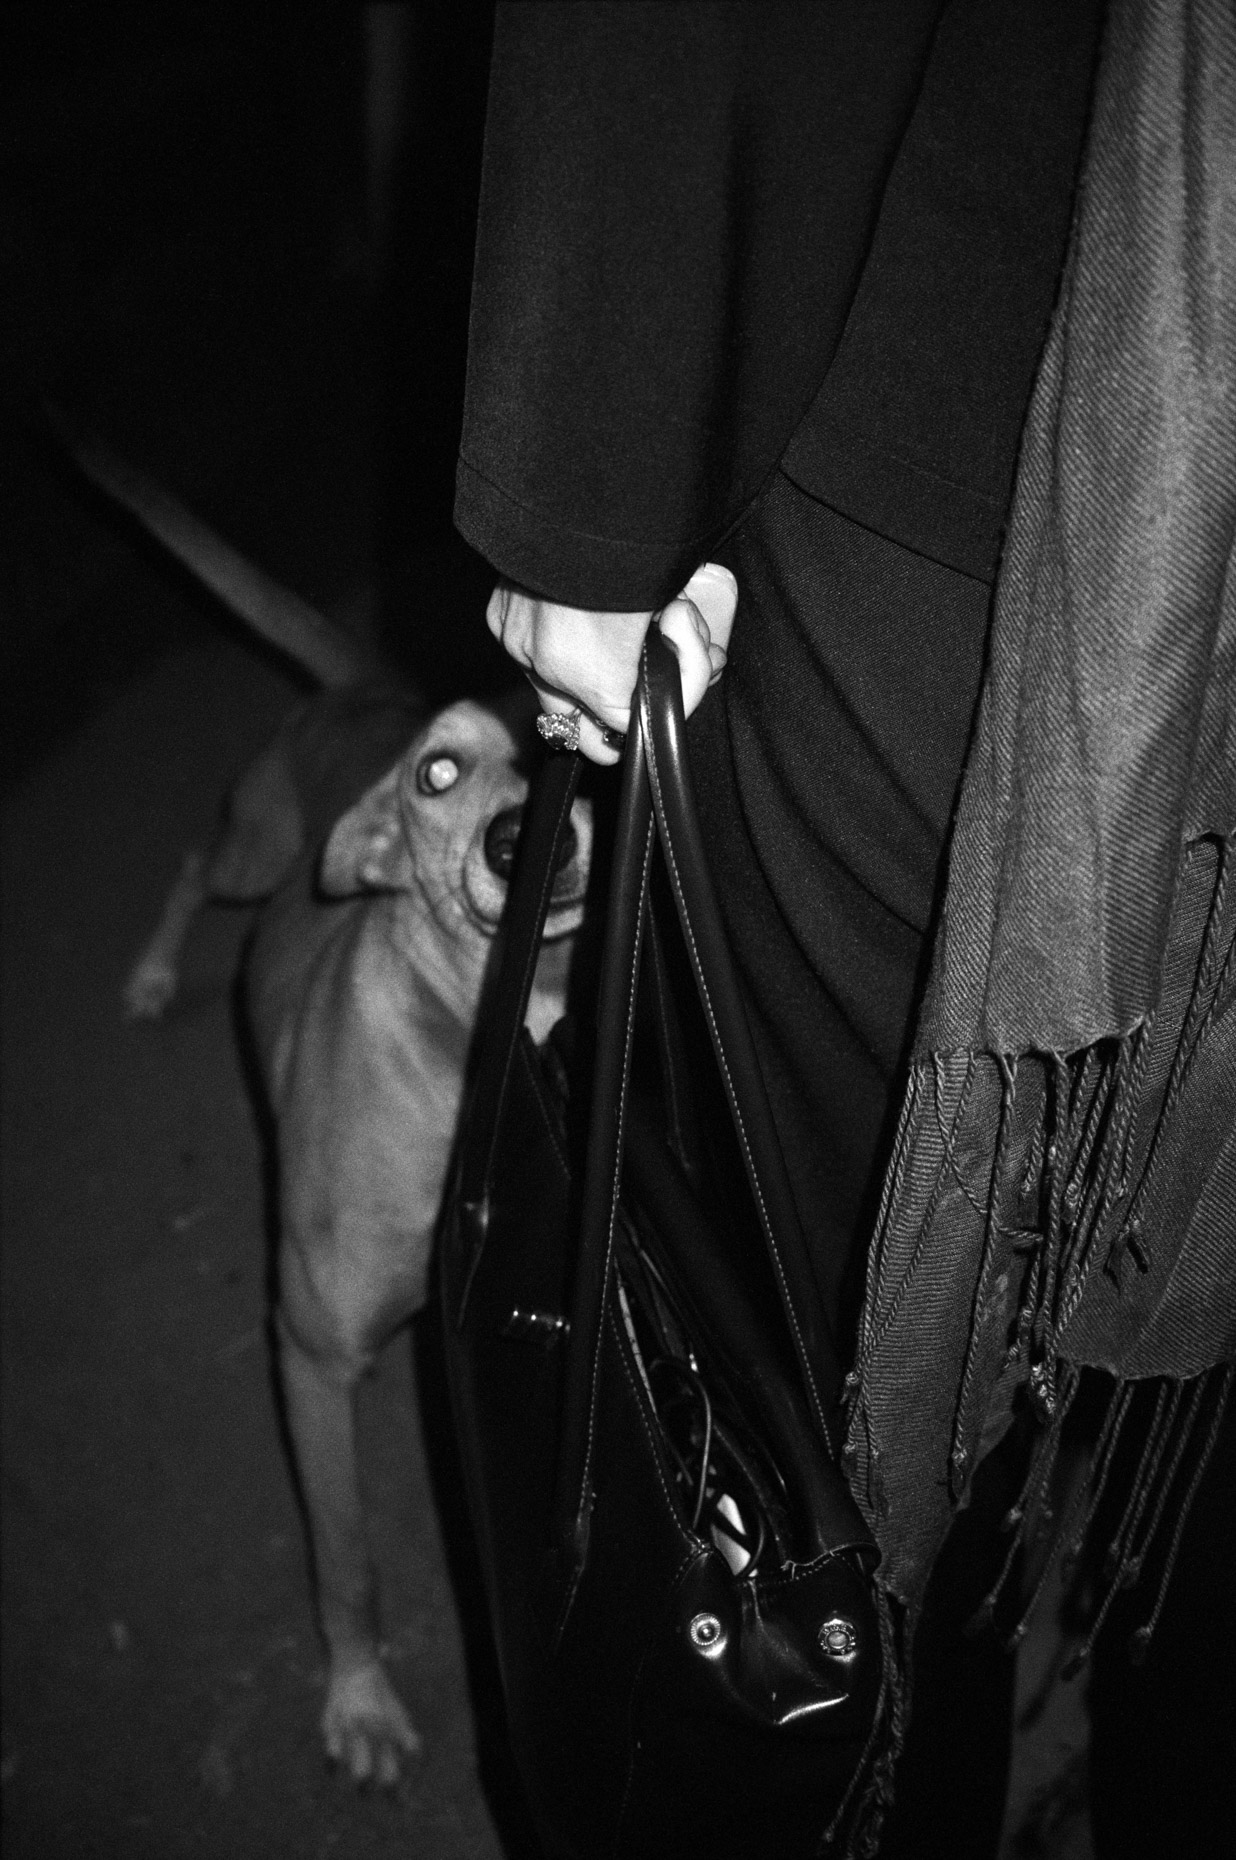 Dog and Handbag, Delhi